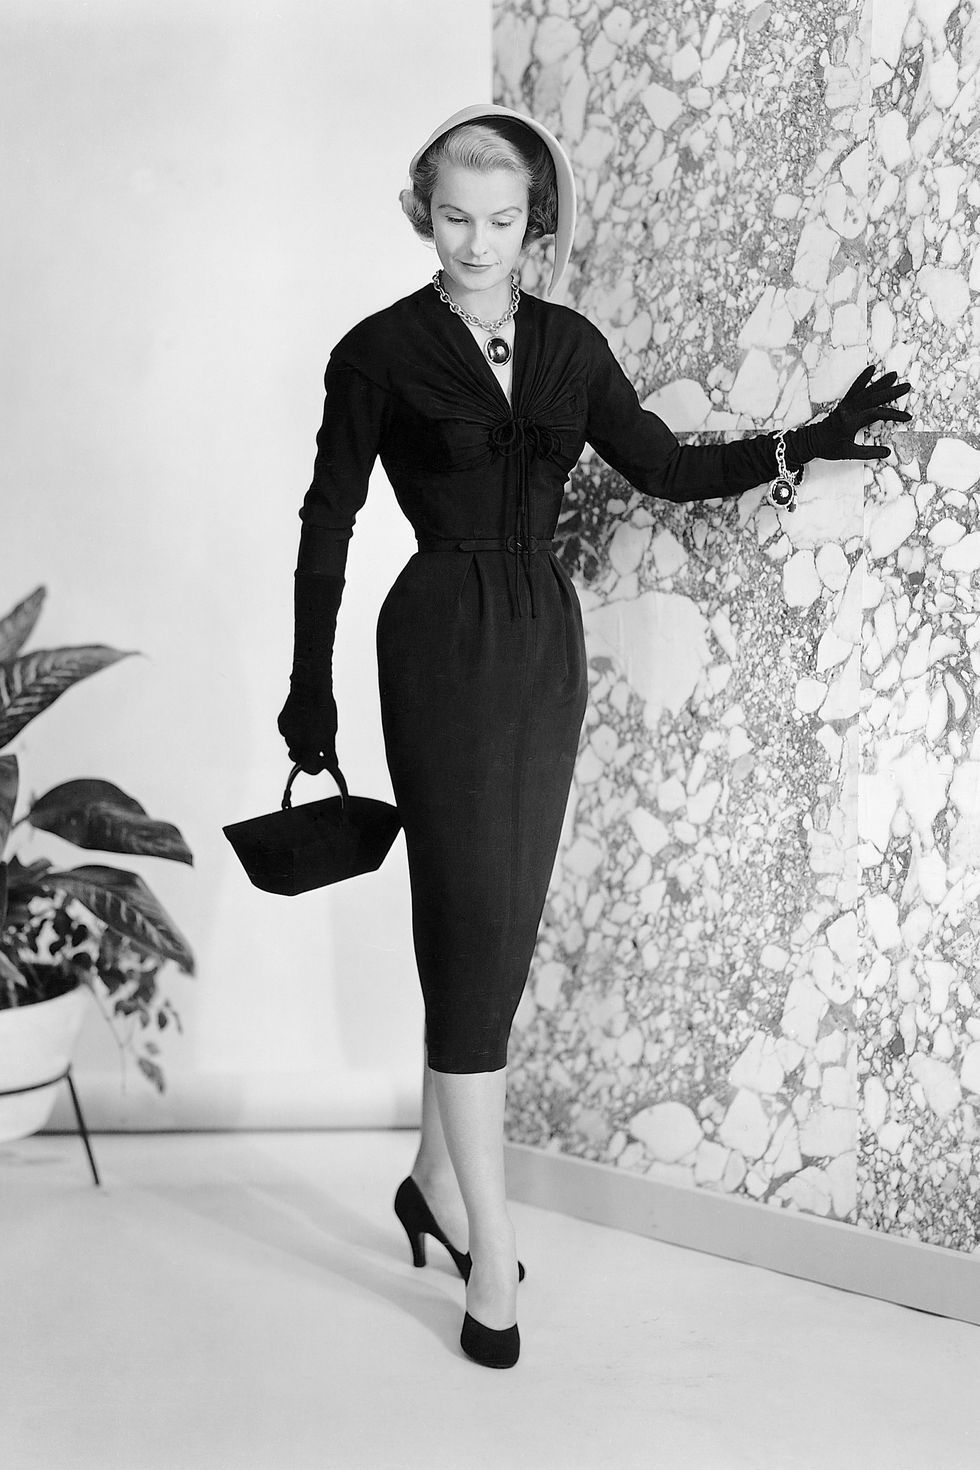 cf45b100113 1950s Fashion Photos and Trends - Fashion Trends From The 50s   FashionTrendsVintage